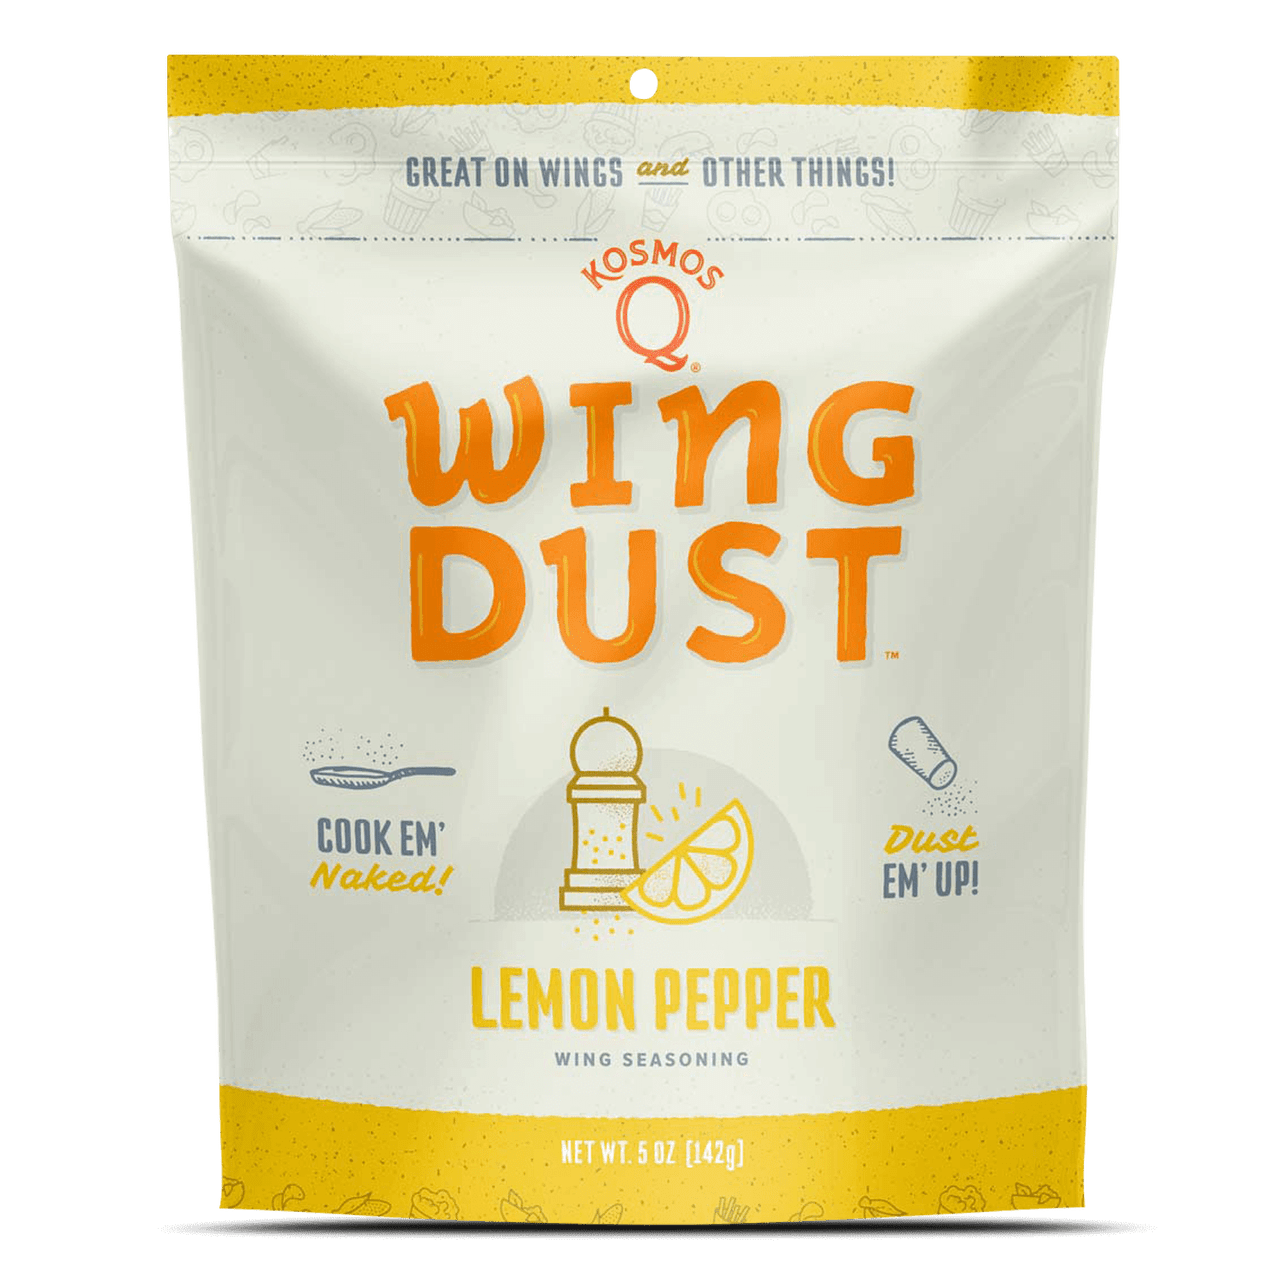 Kosmos Q BBQ Rub Wing Dust Lemon Pepper